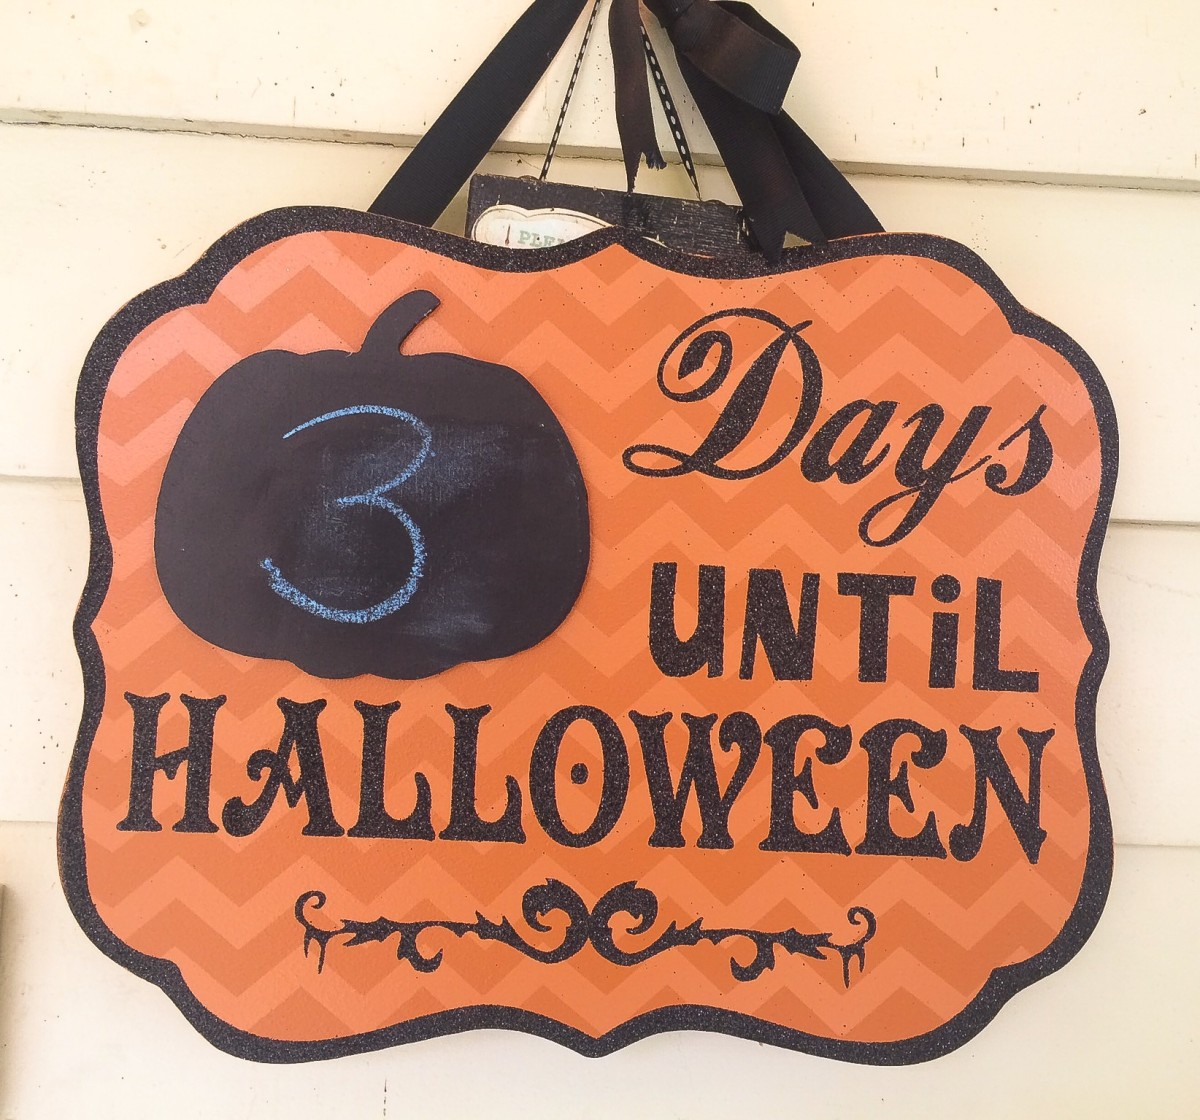 HALLOWEEN COUNTDOWN - NEIGHBORHOOD DECORATIONS AND SCARECROW MIX ...